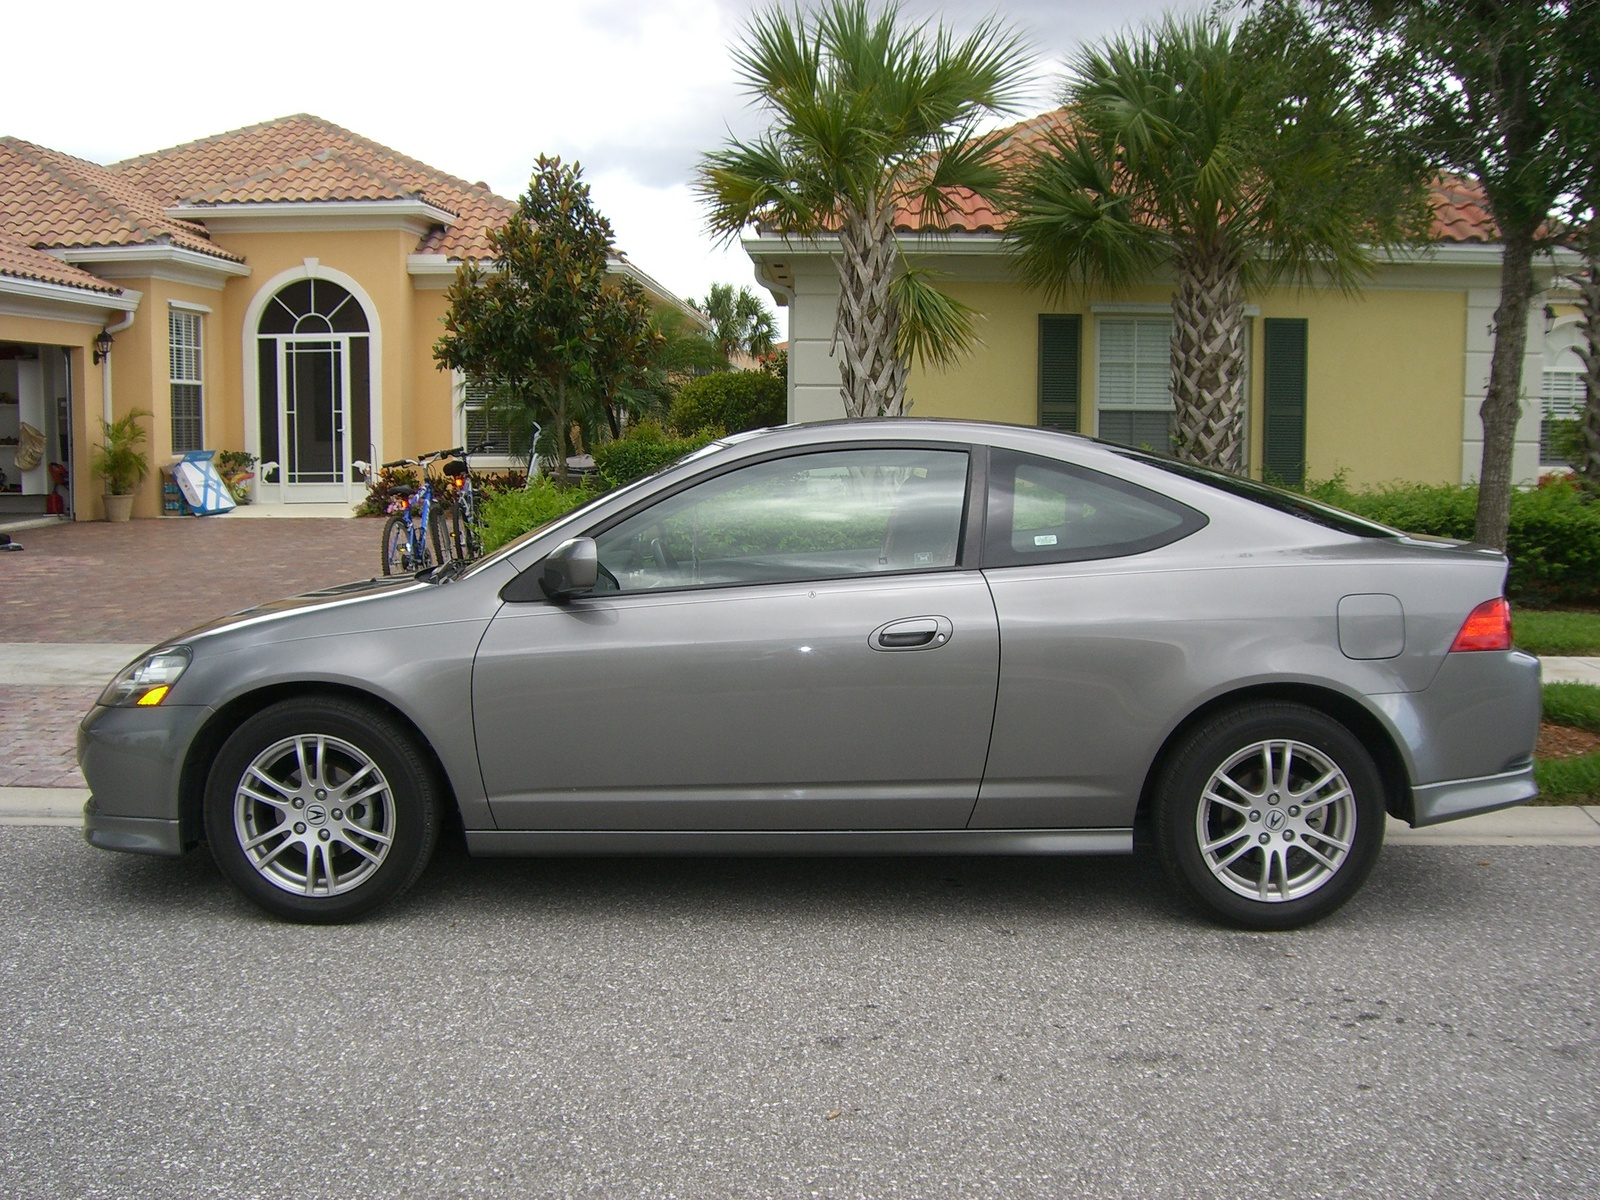 2006 Acura RSX Coupe Picture Exterior